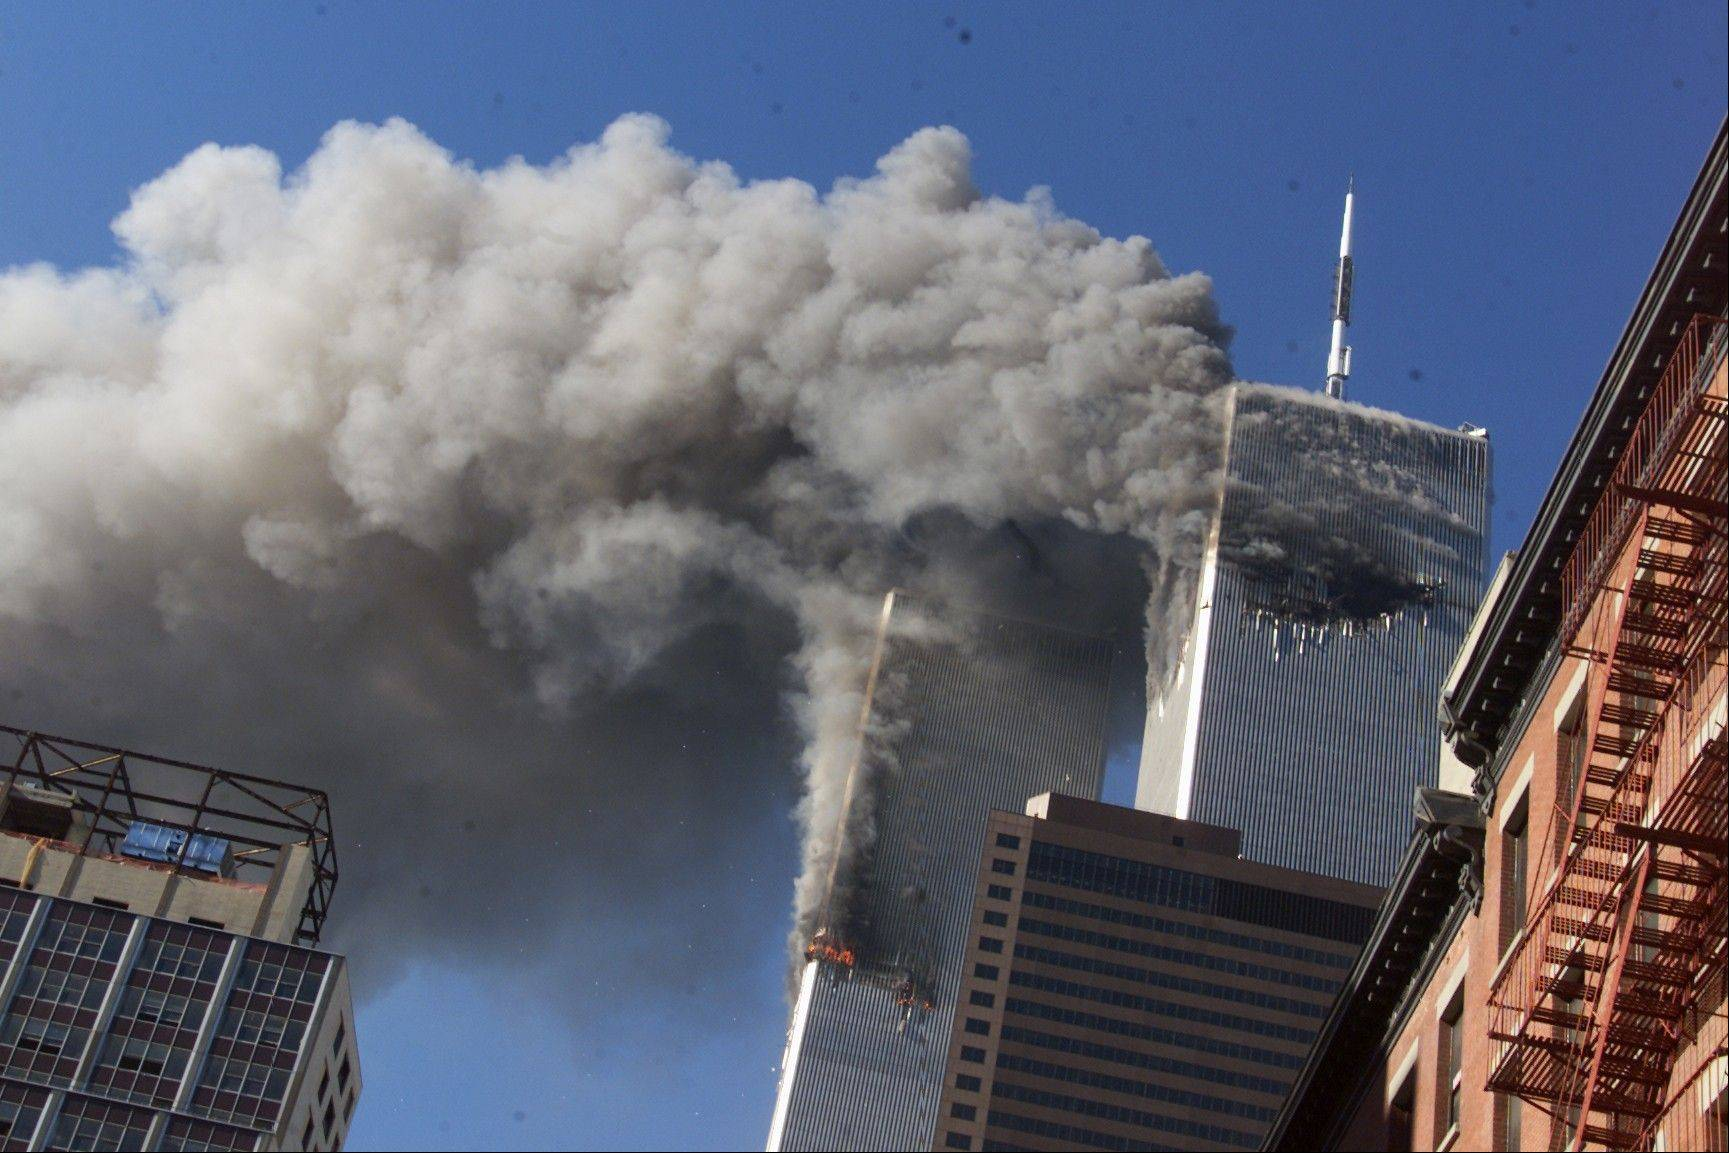 Smoke rises from the burning twin towers of the World Trade Center.